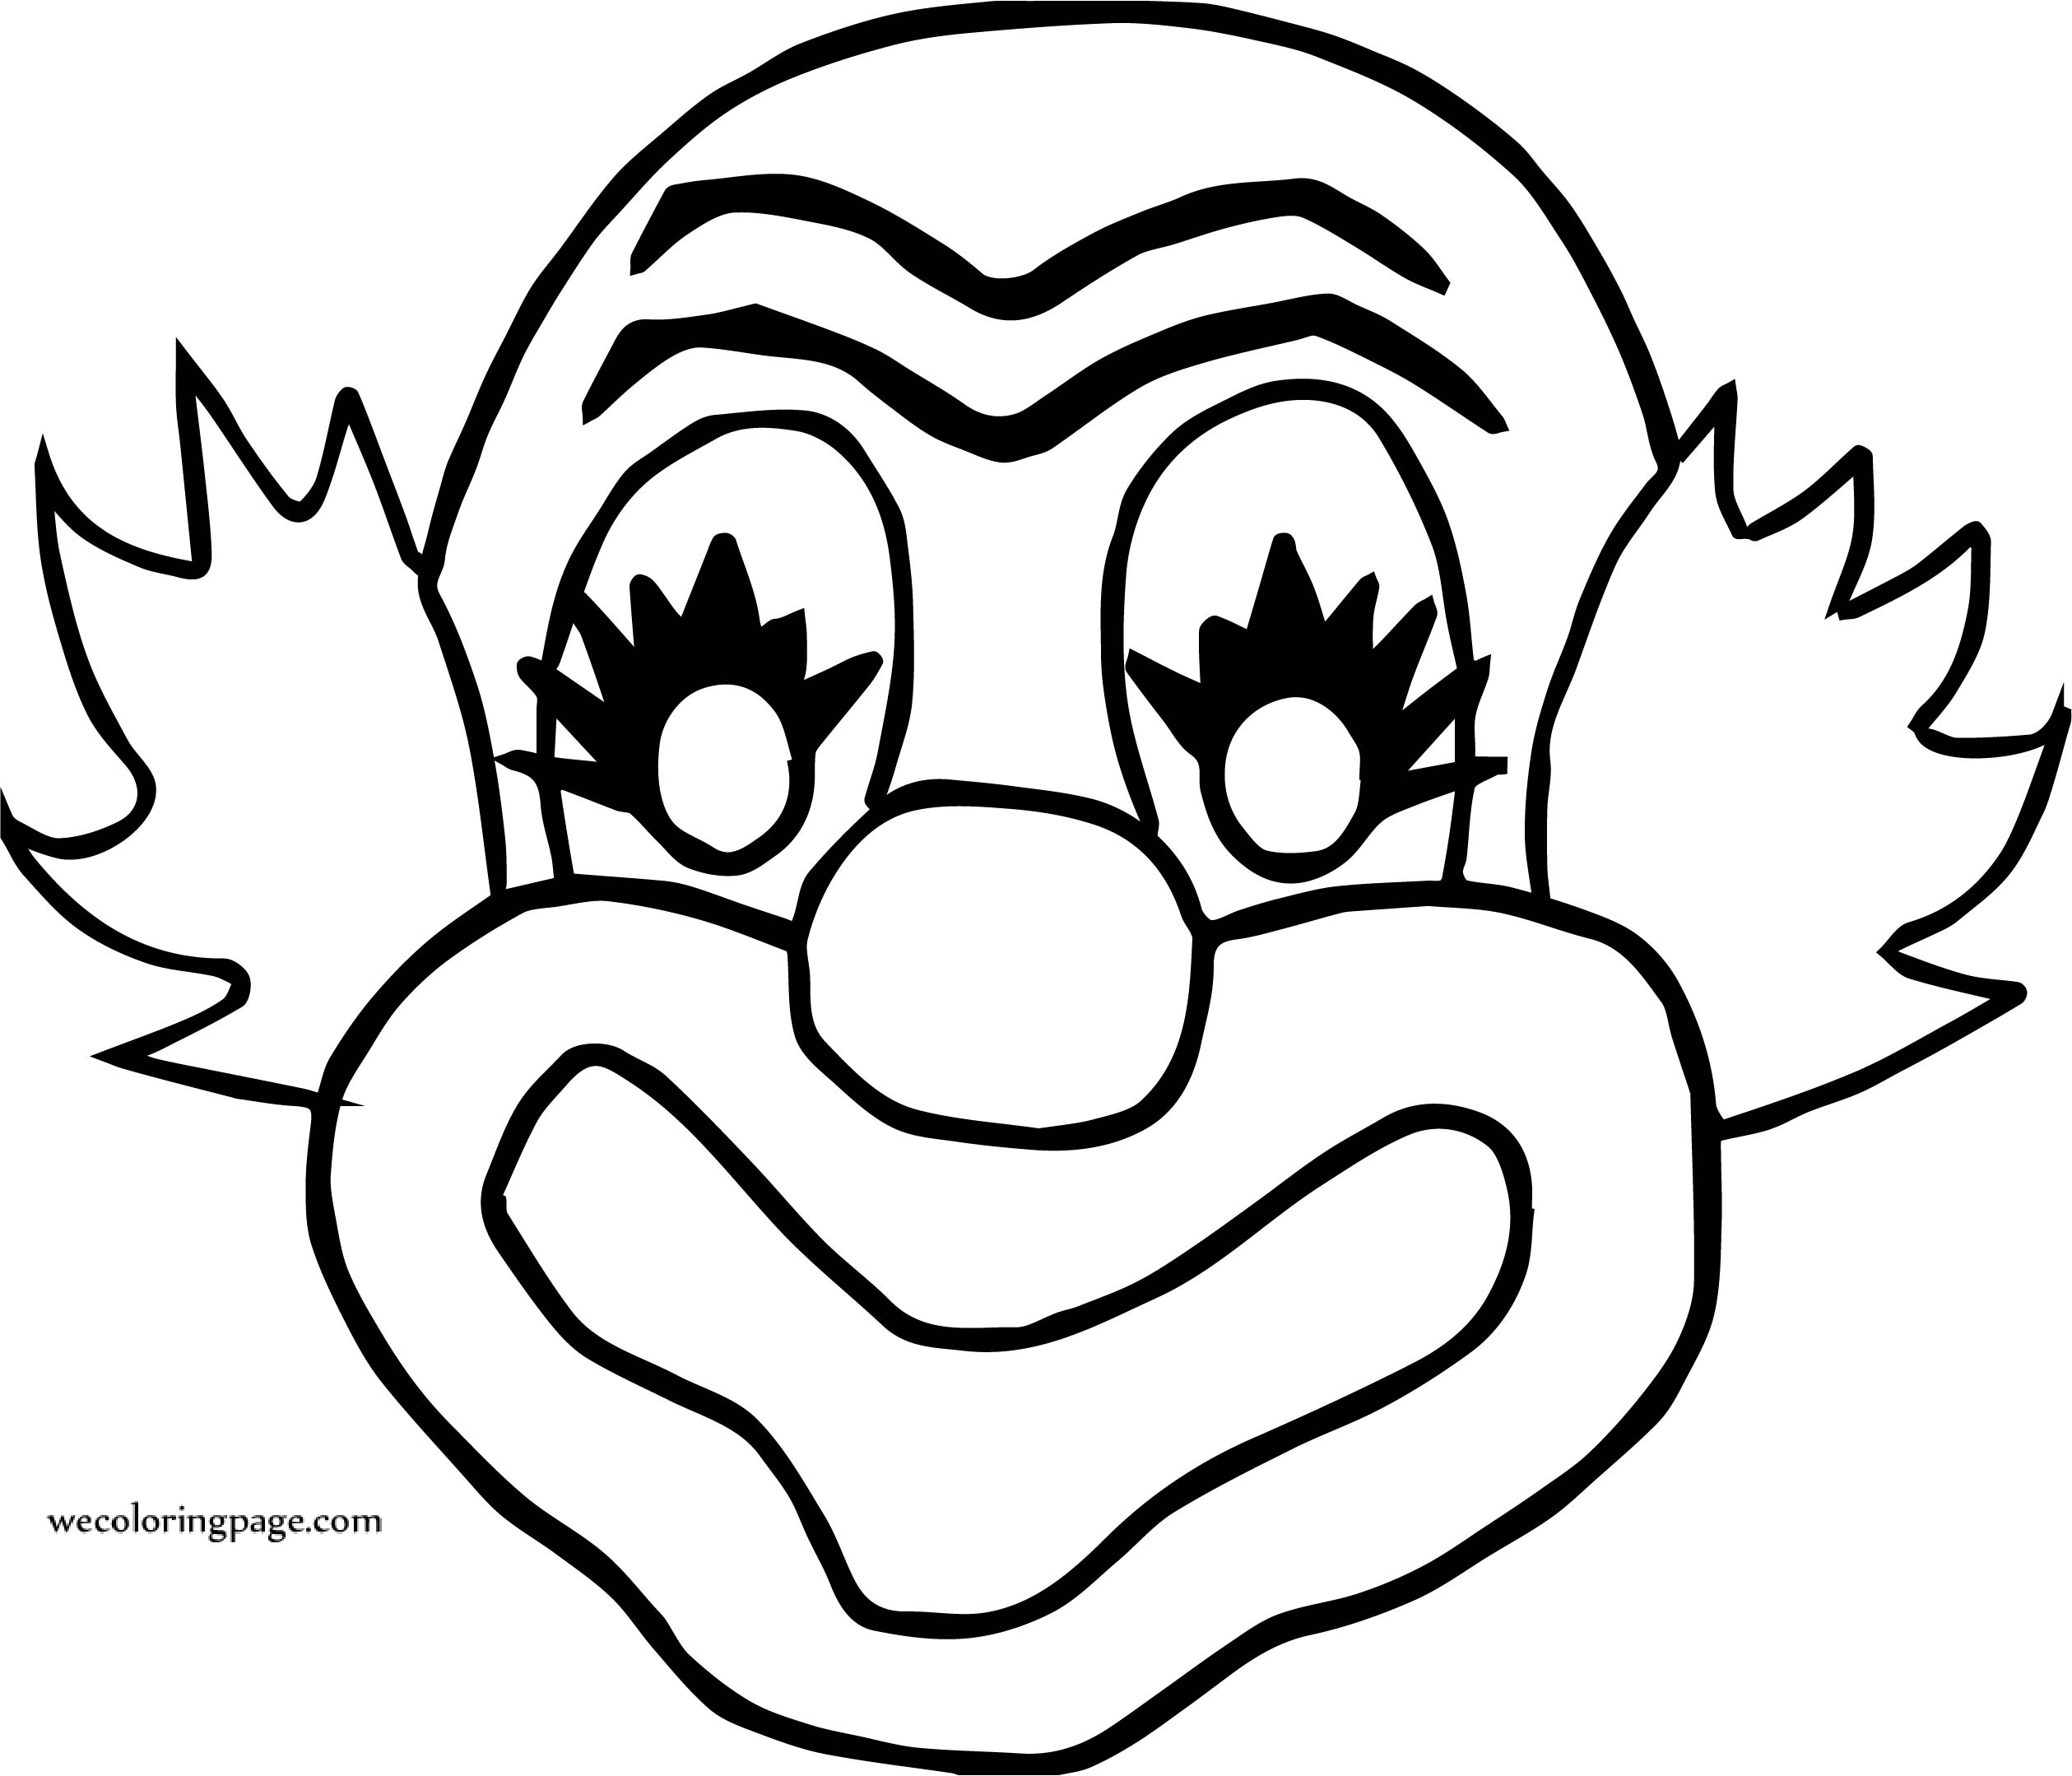 Clown Coloring Pages Now